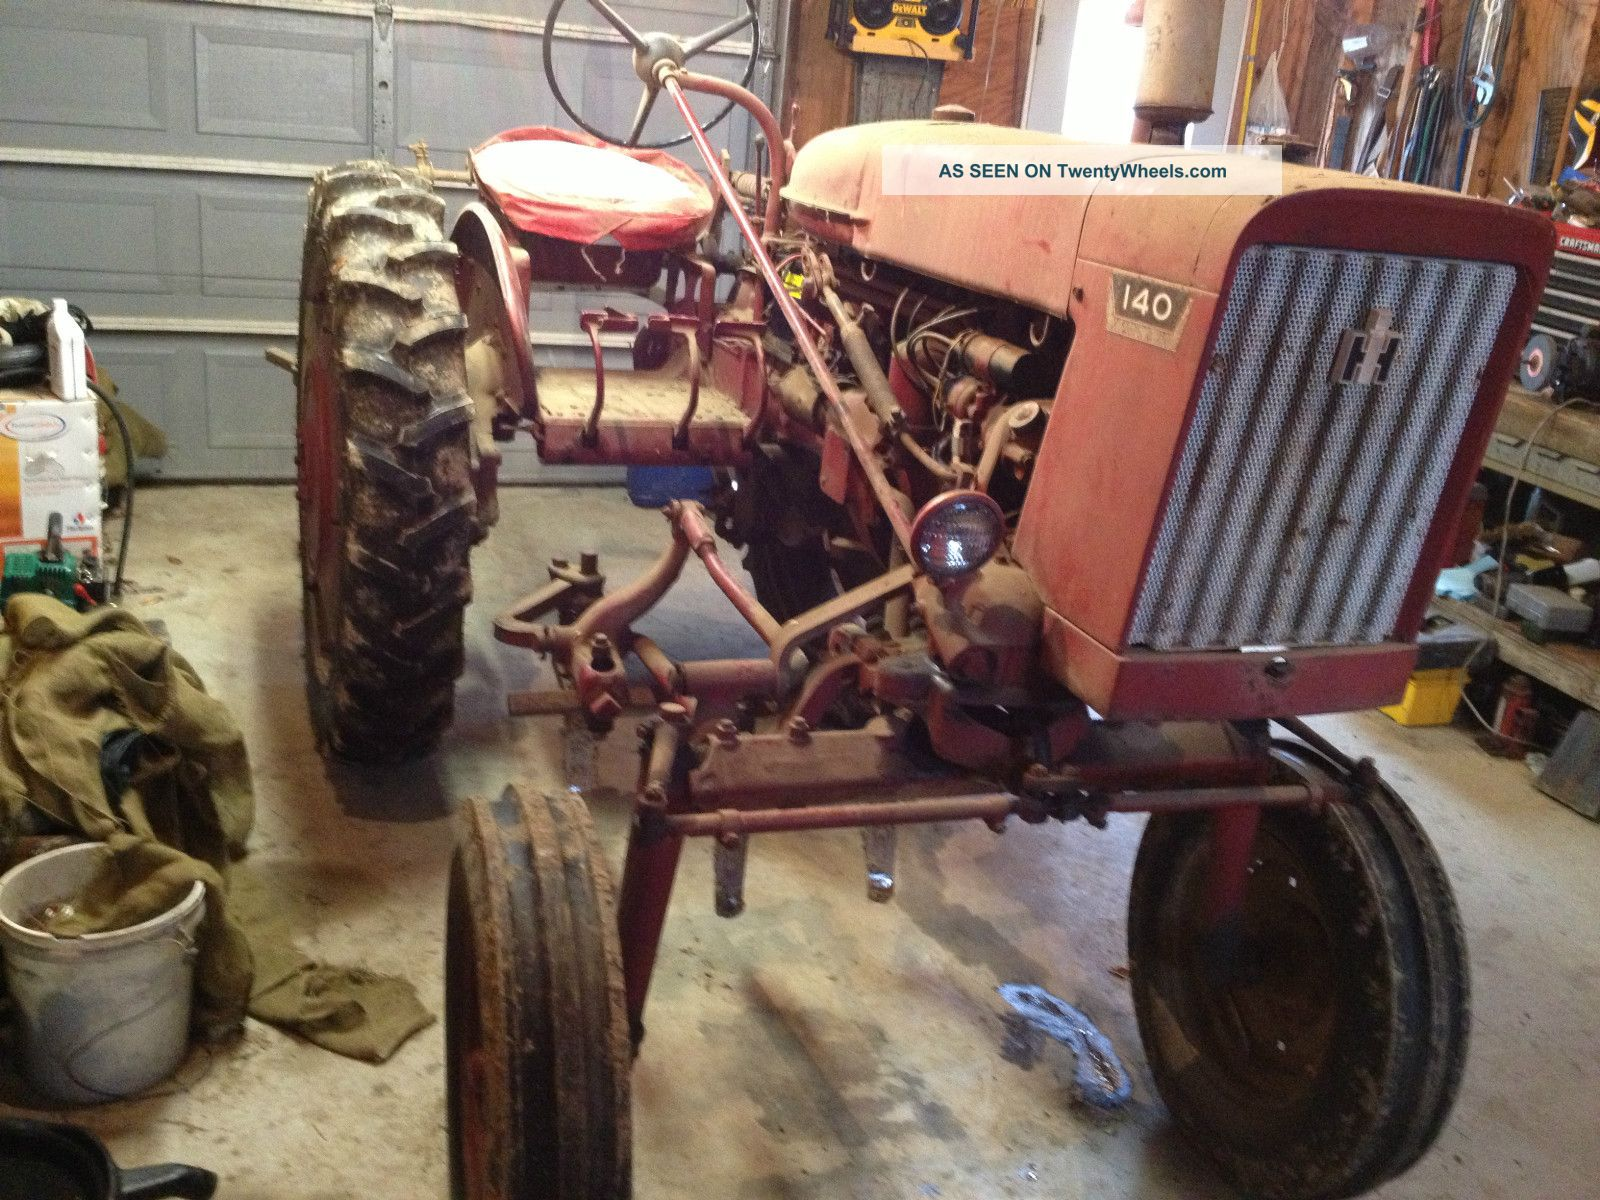 Farmall International 140 High Clearence Tractor With Cultivators Tractors photo